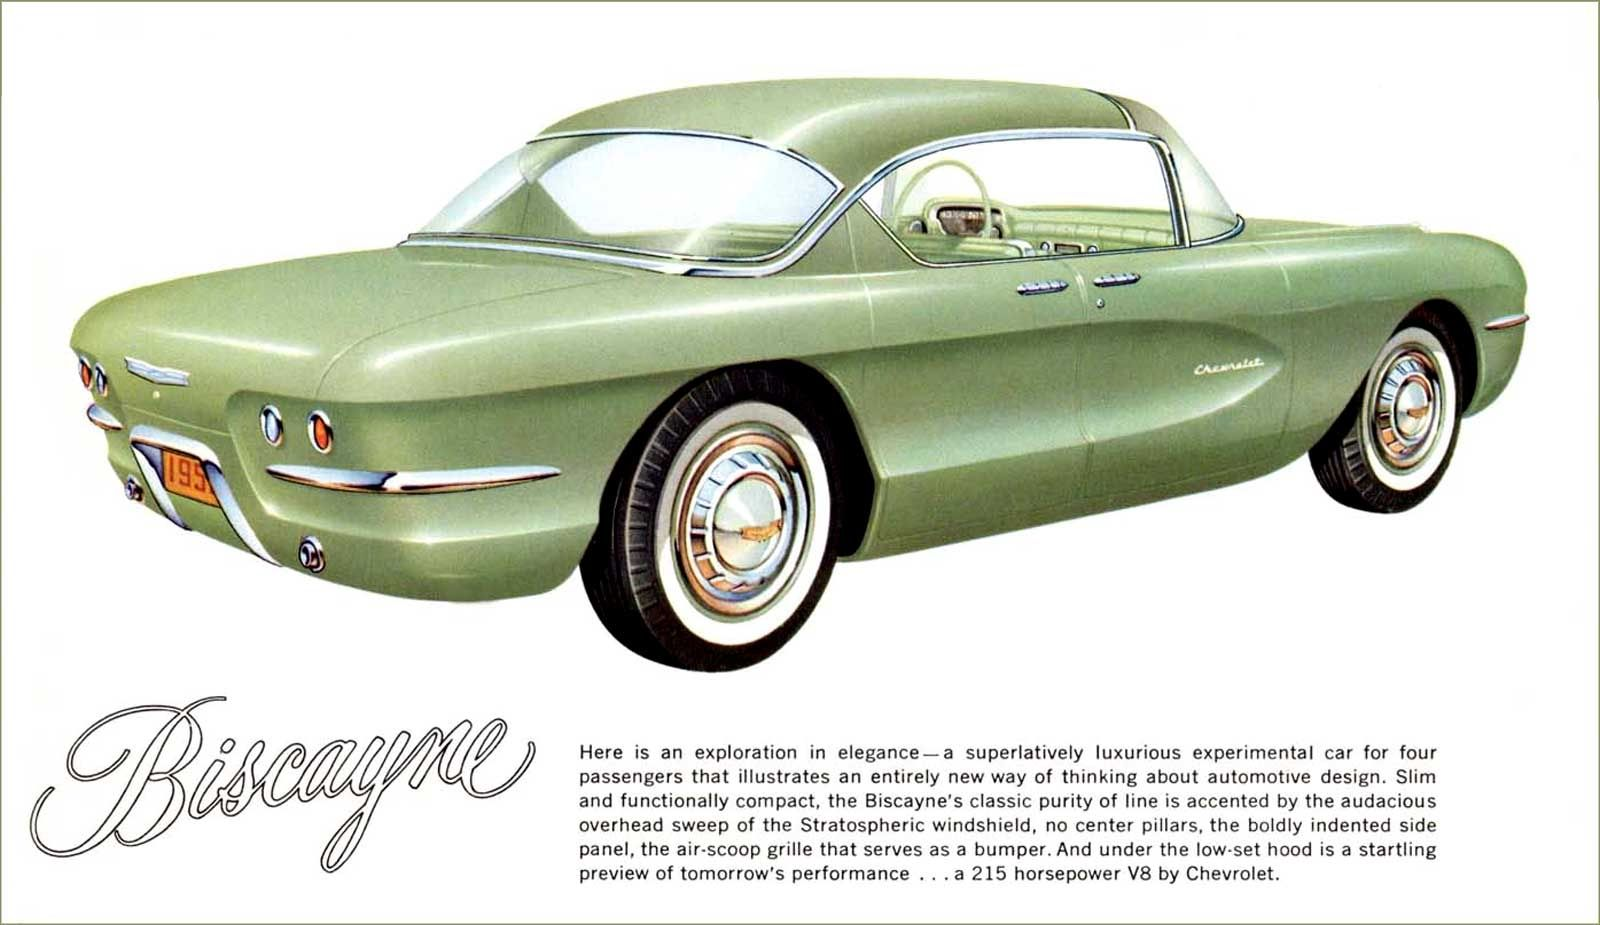 1955 Motorama - The Chevrolet Biscayne experimental four passenger model (rear view).